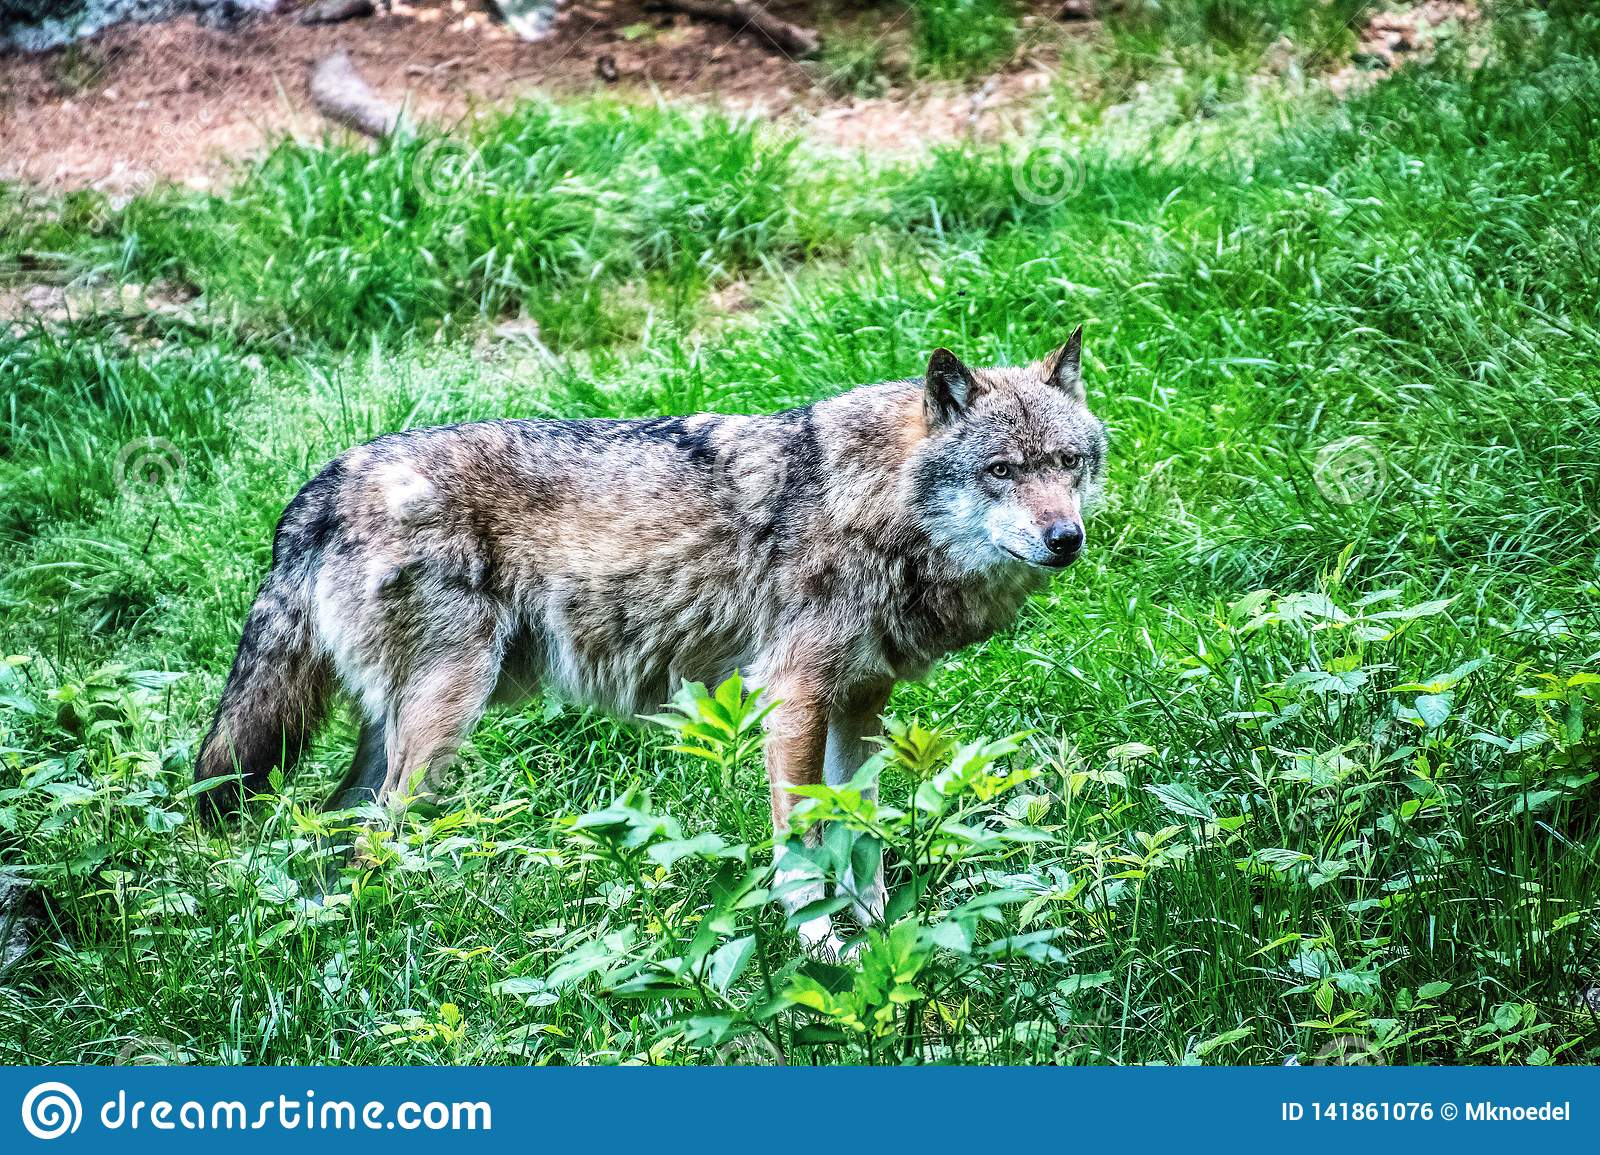 Gray wolf standing on the grass